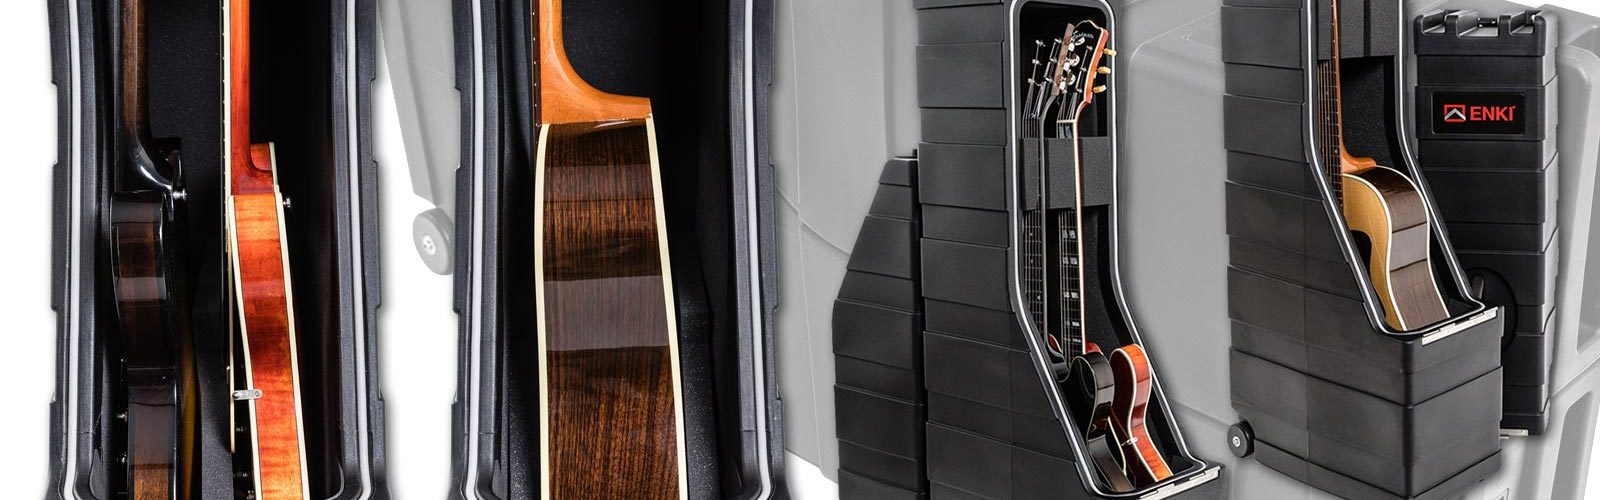 ENKI USA Introduces New AMG Series Cases at Summer NAMM Show